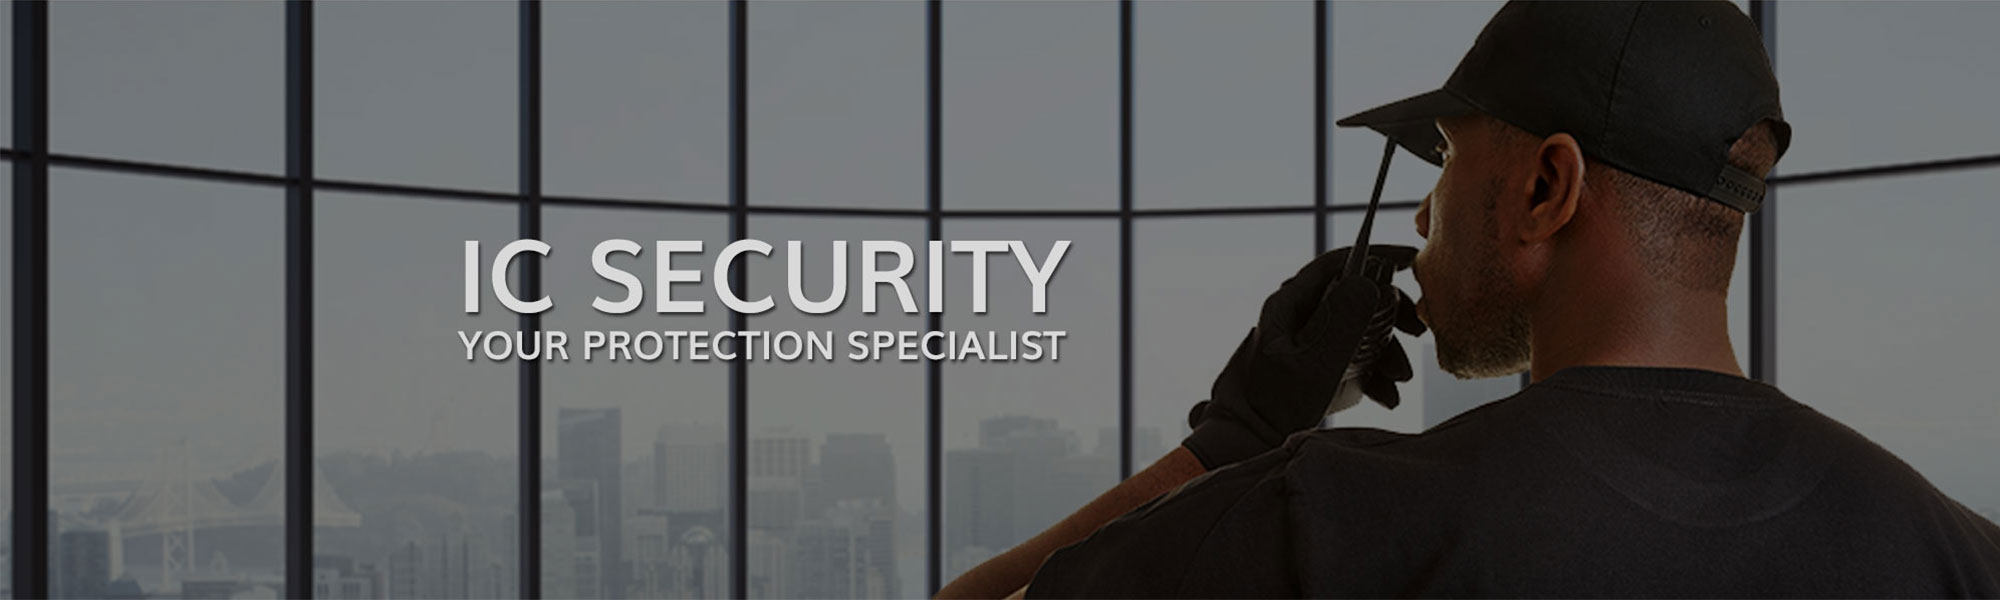 IC Security Protection Specialist